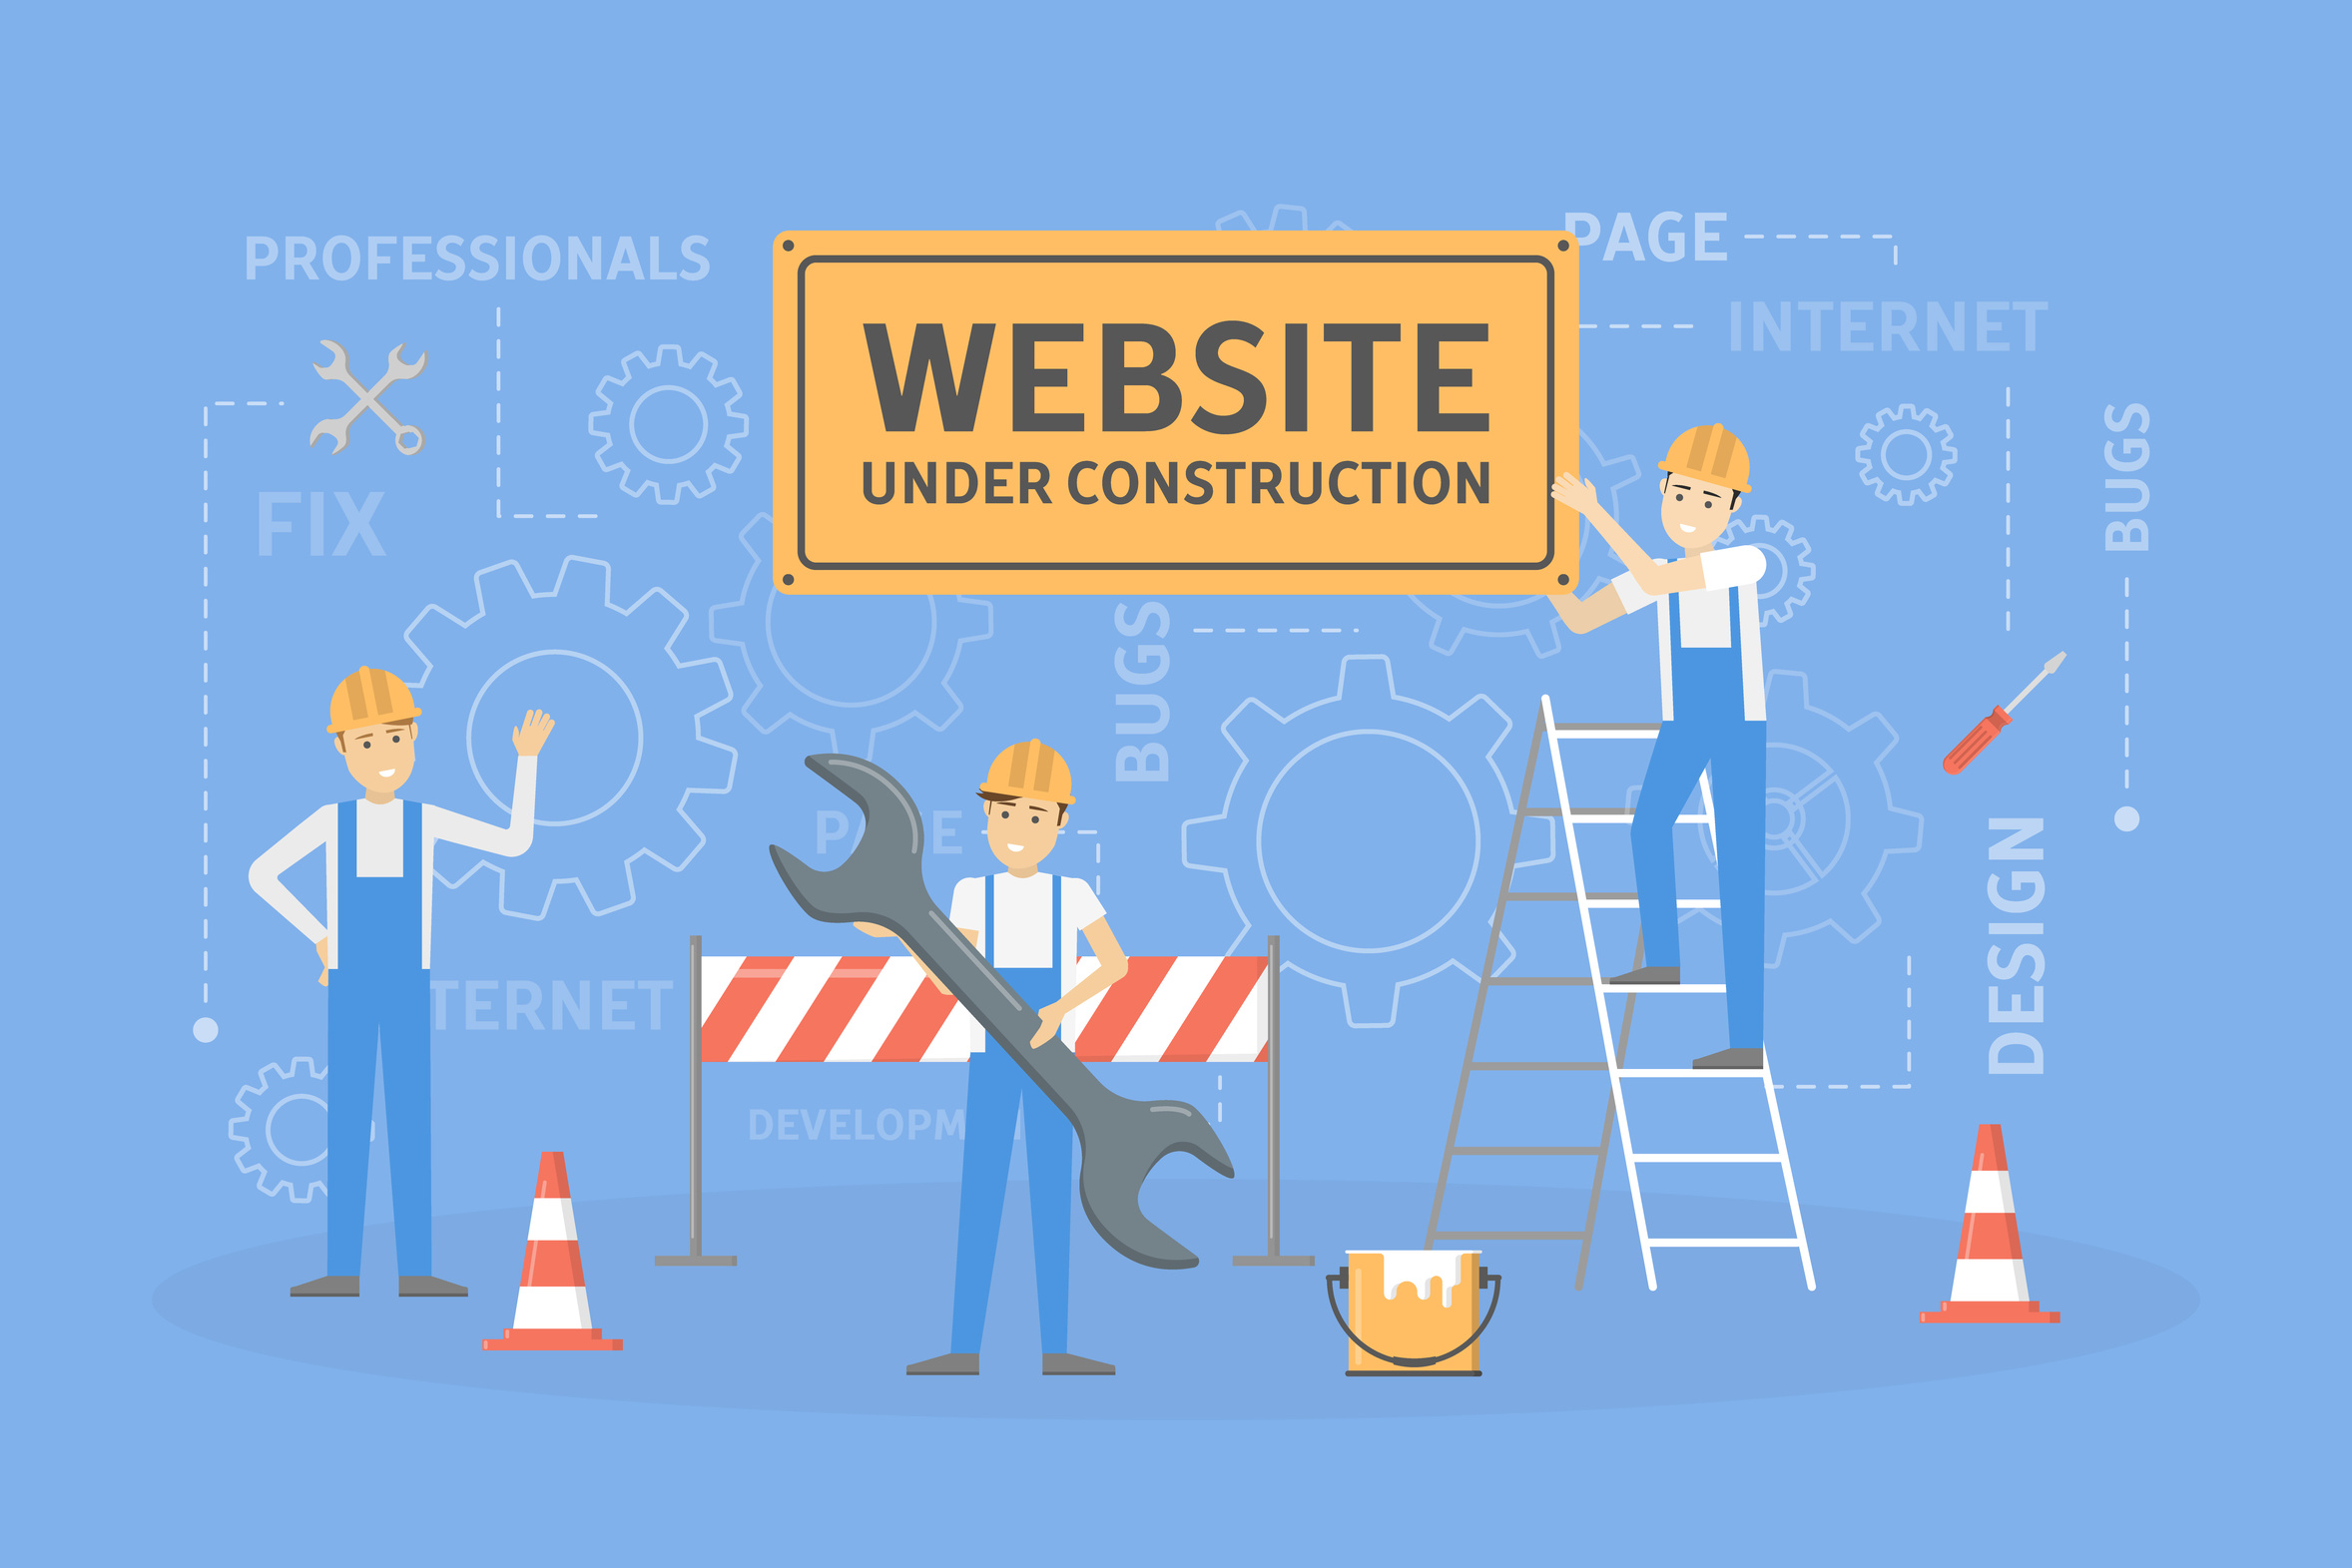 web HF underconstruction